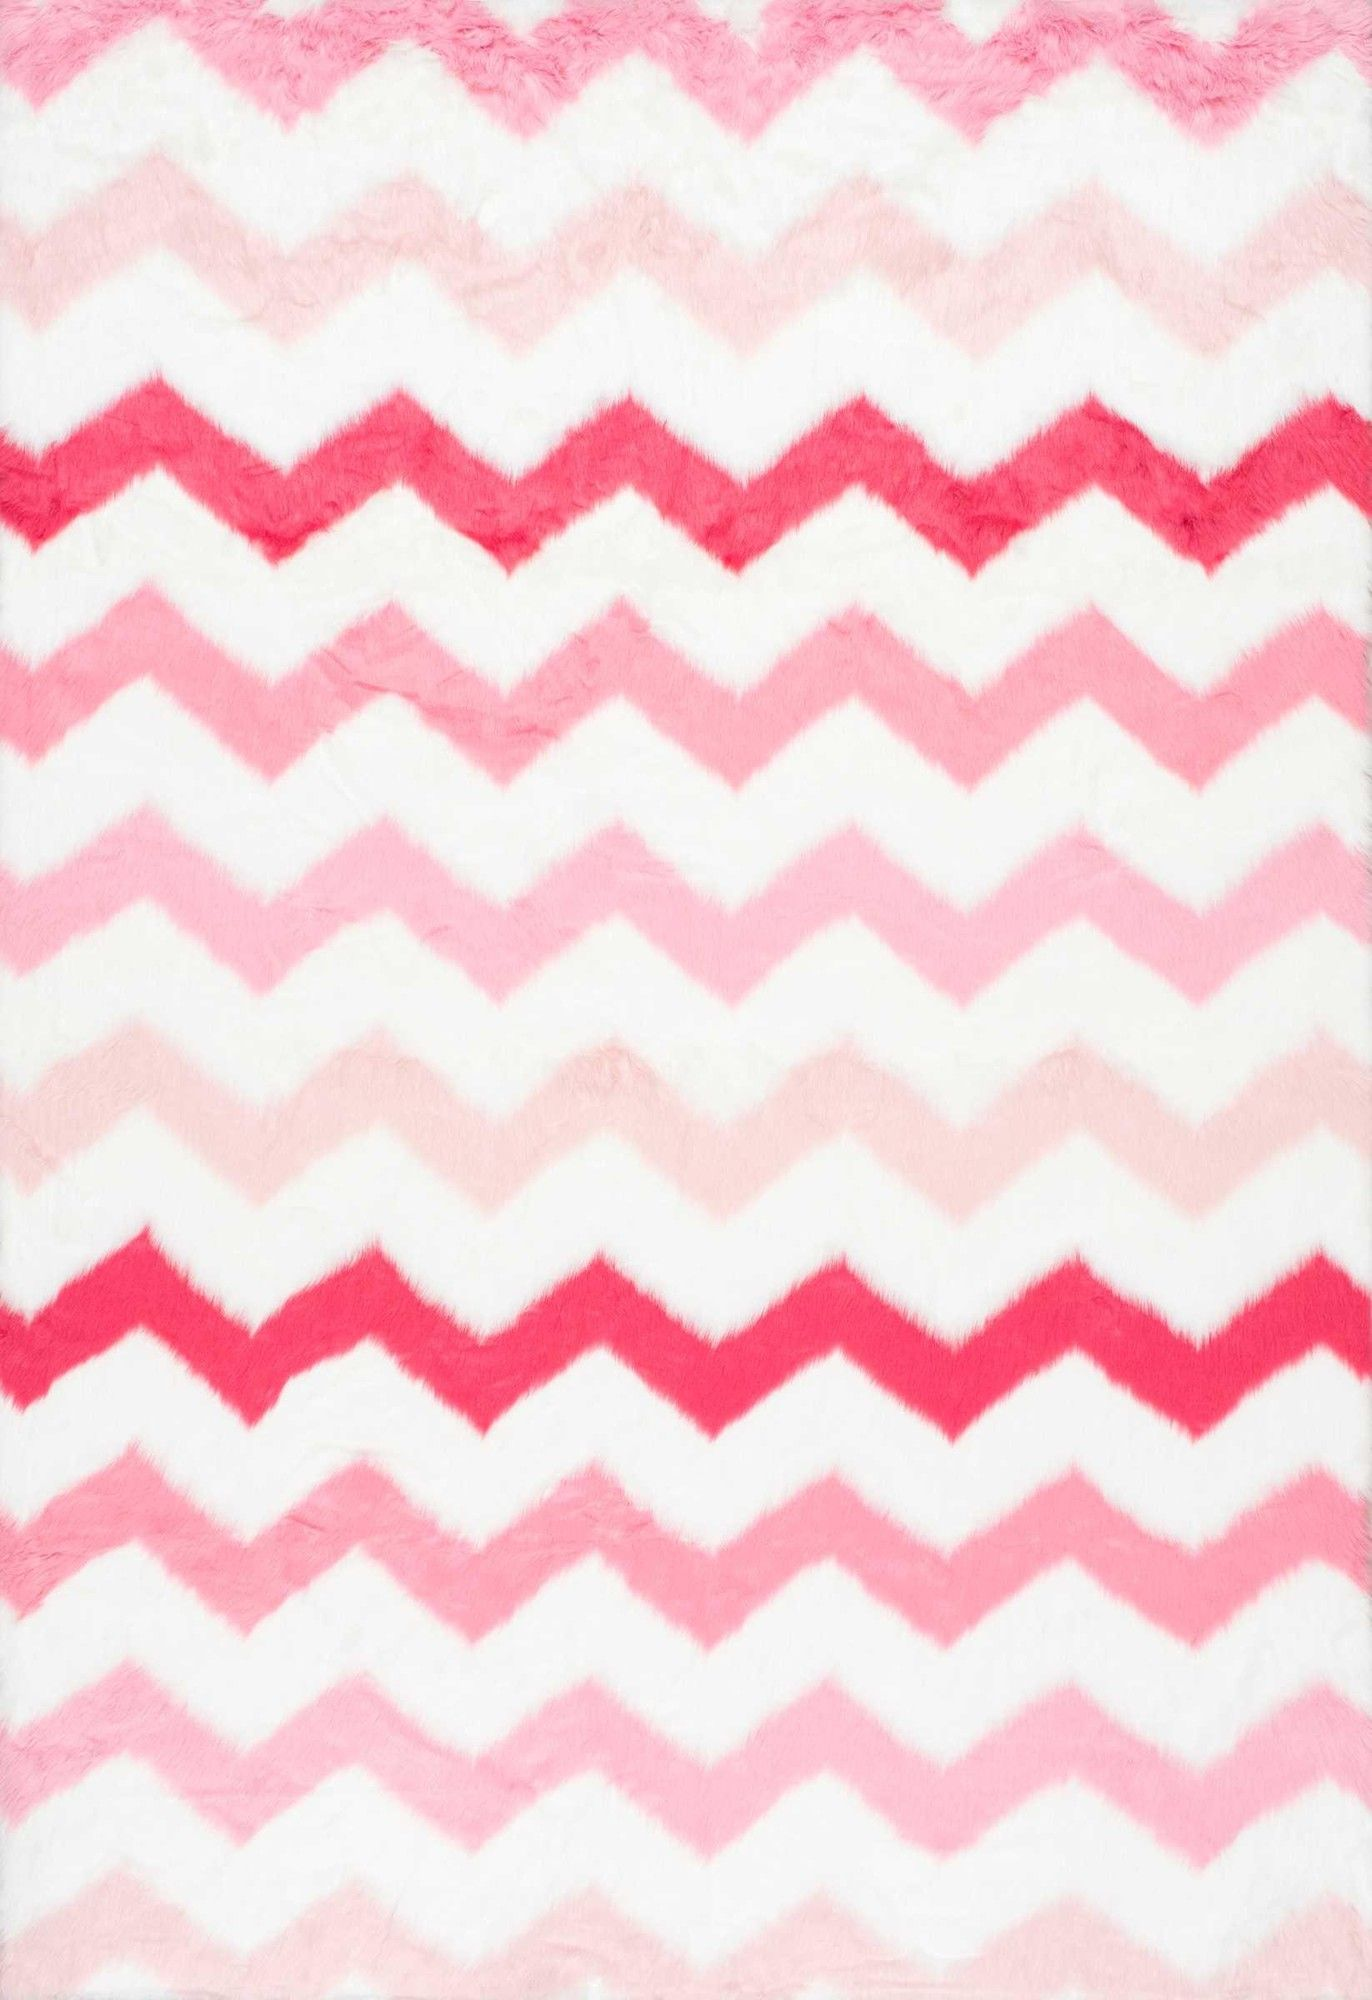 Area Rugs Chevron Rugspink